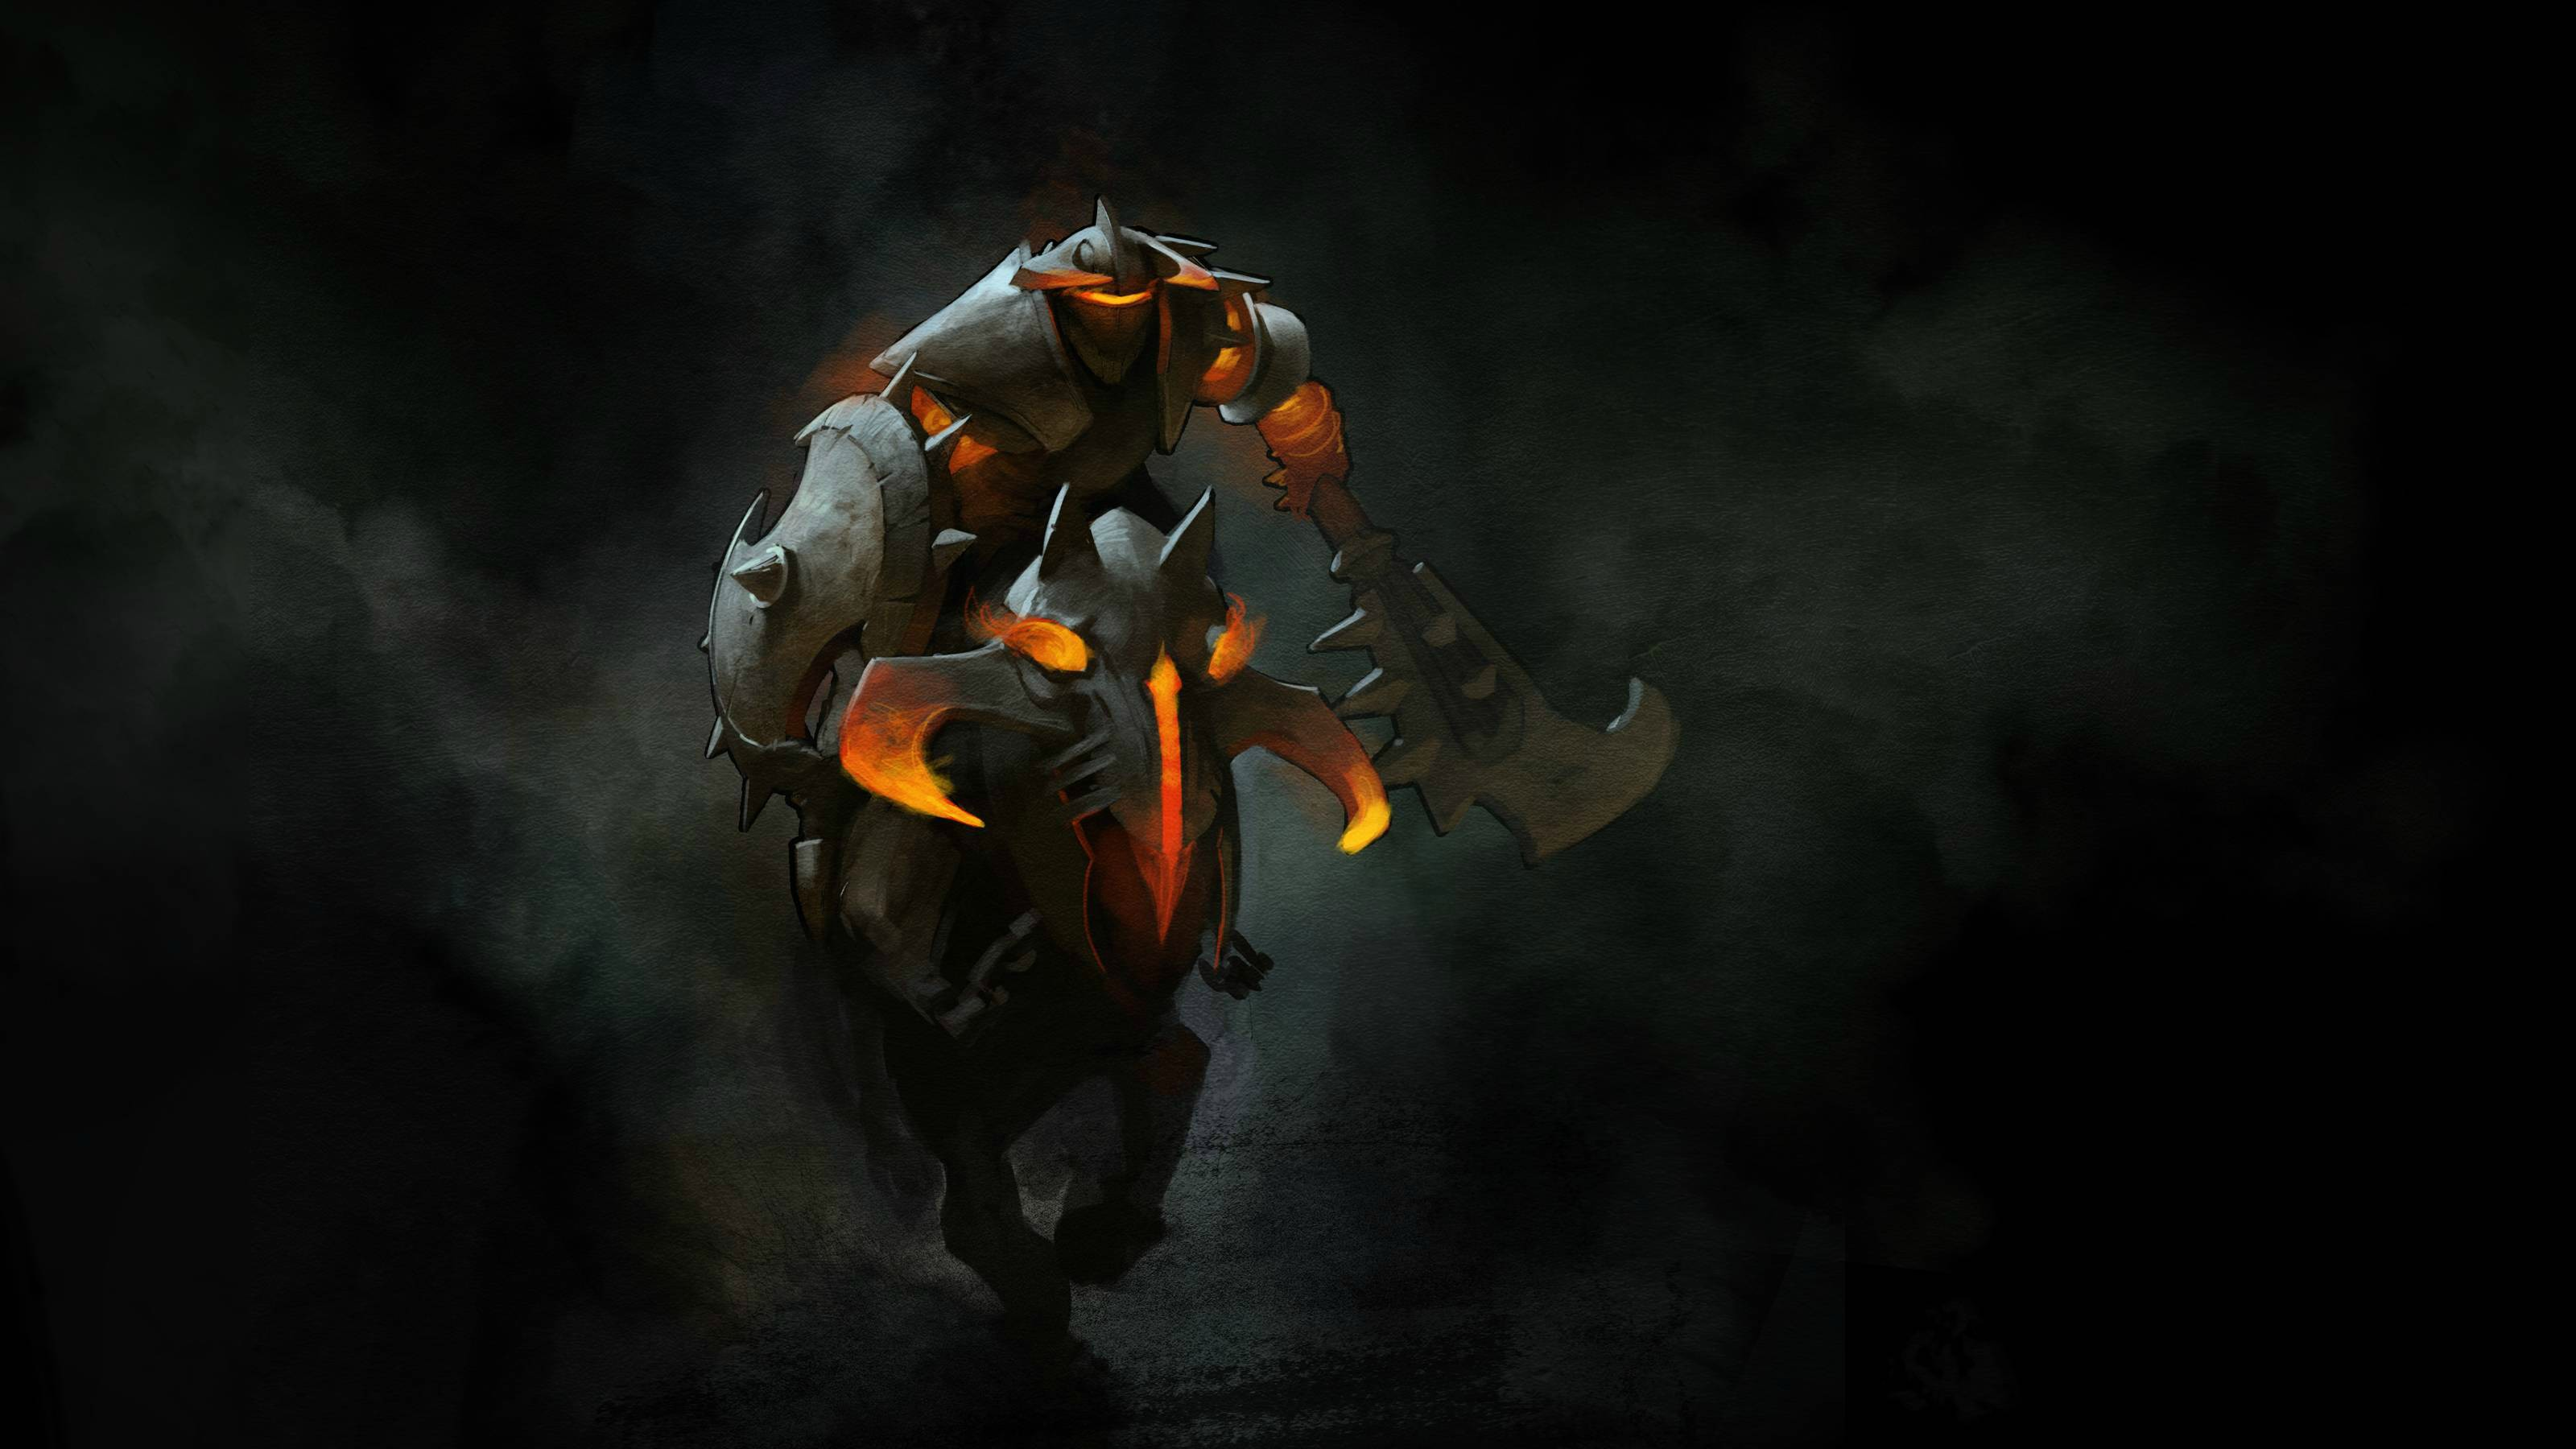 Dota 2 full hd wallpaper and background image 3200x1800 for Deviantart wallpaper